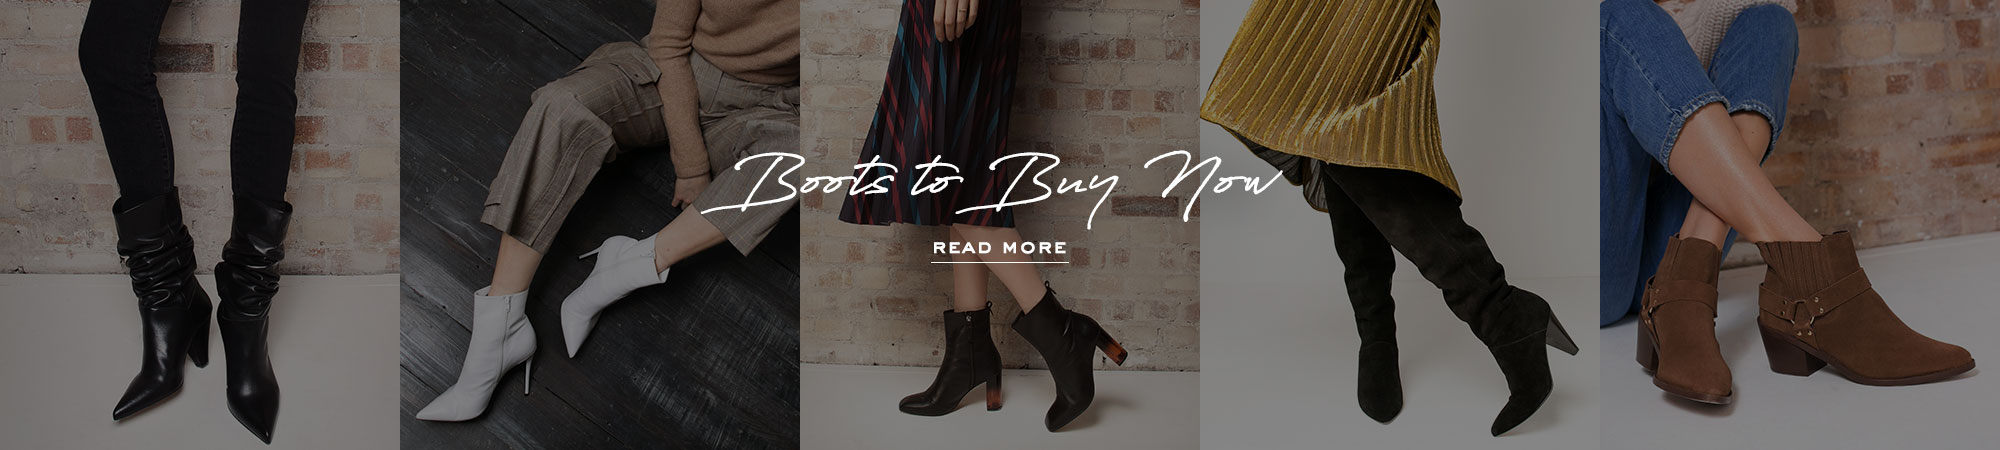 Boots To Buy Now